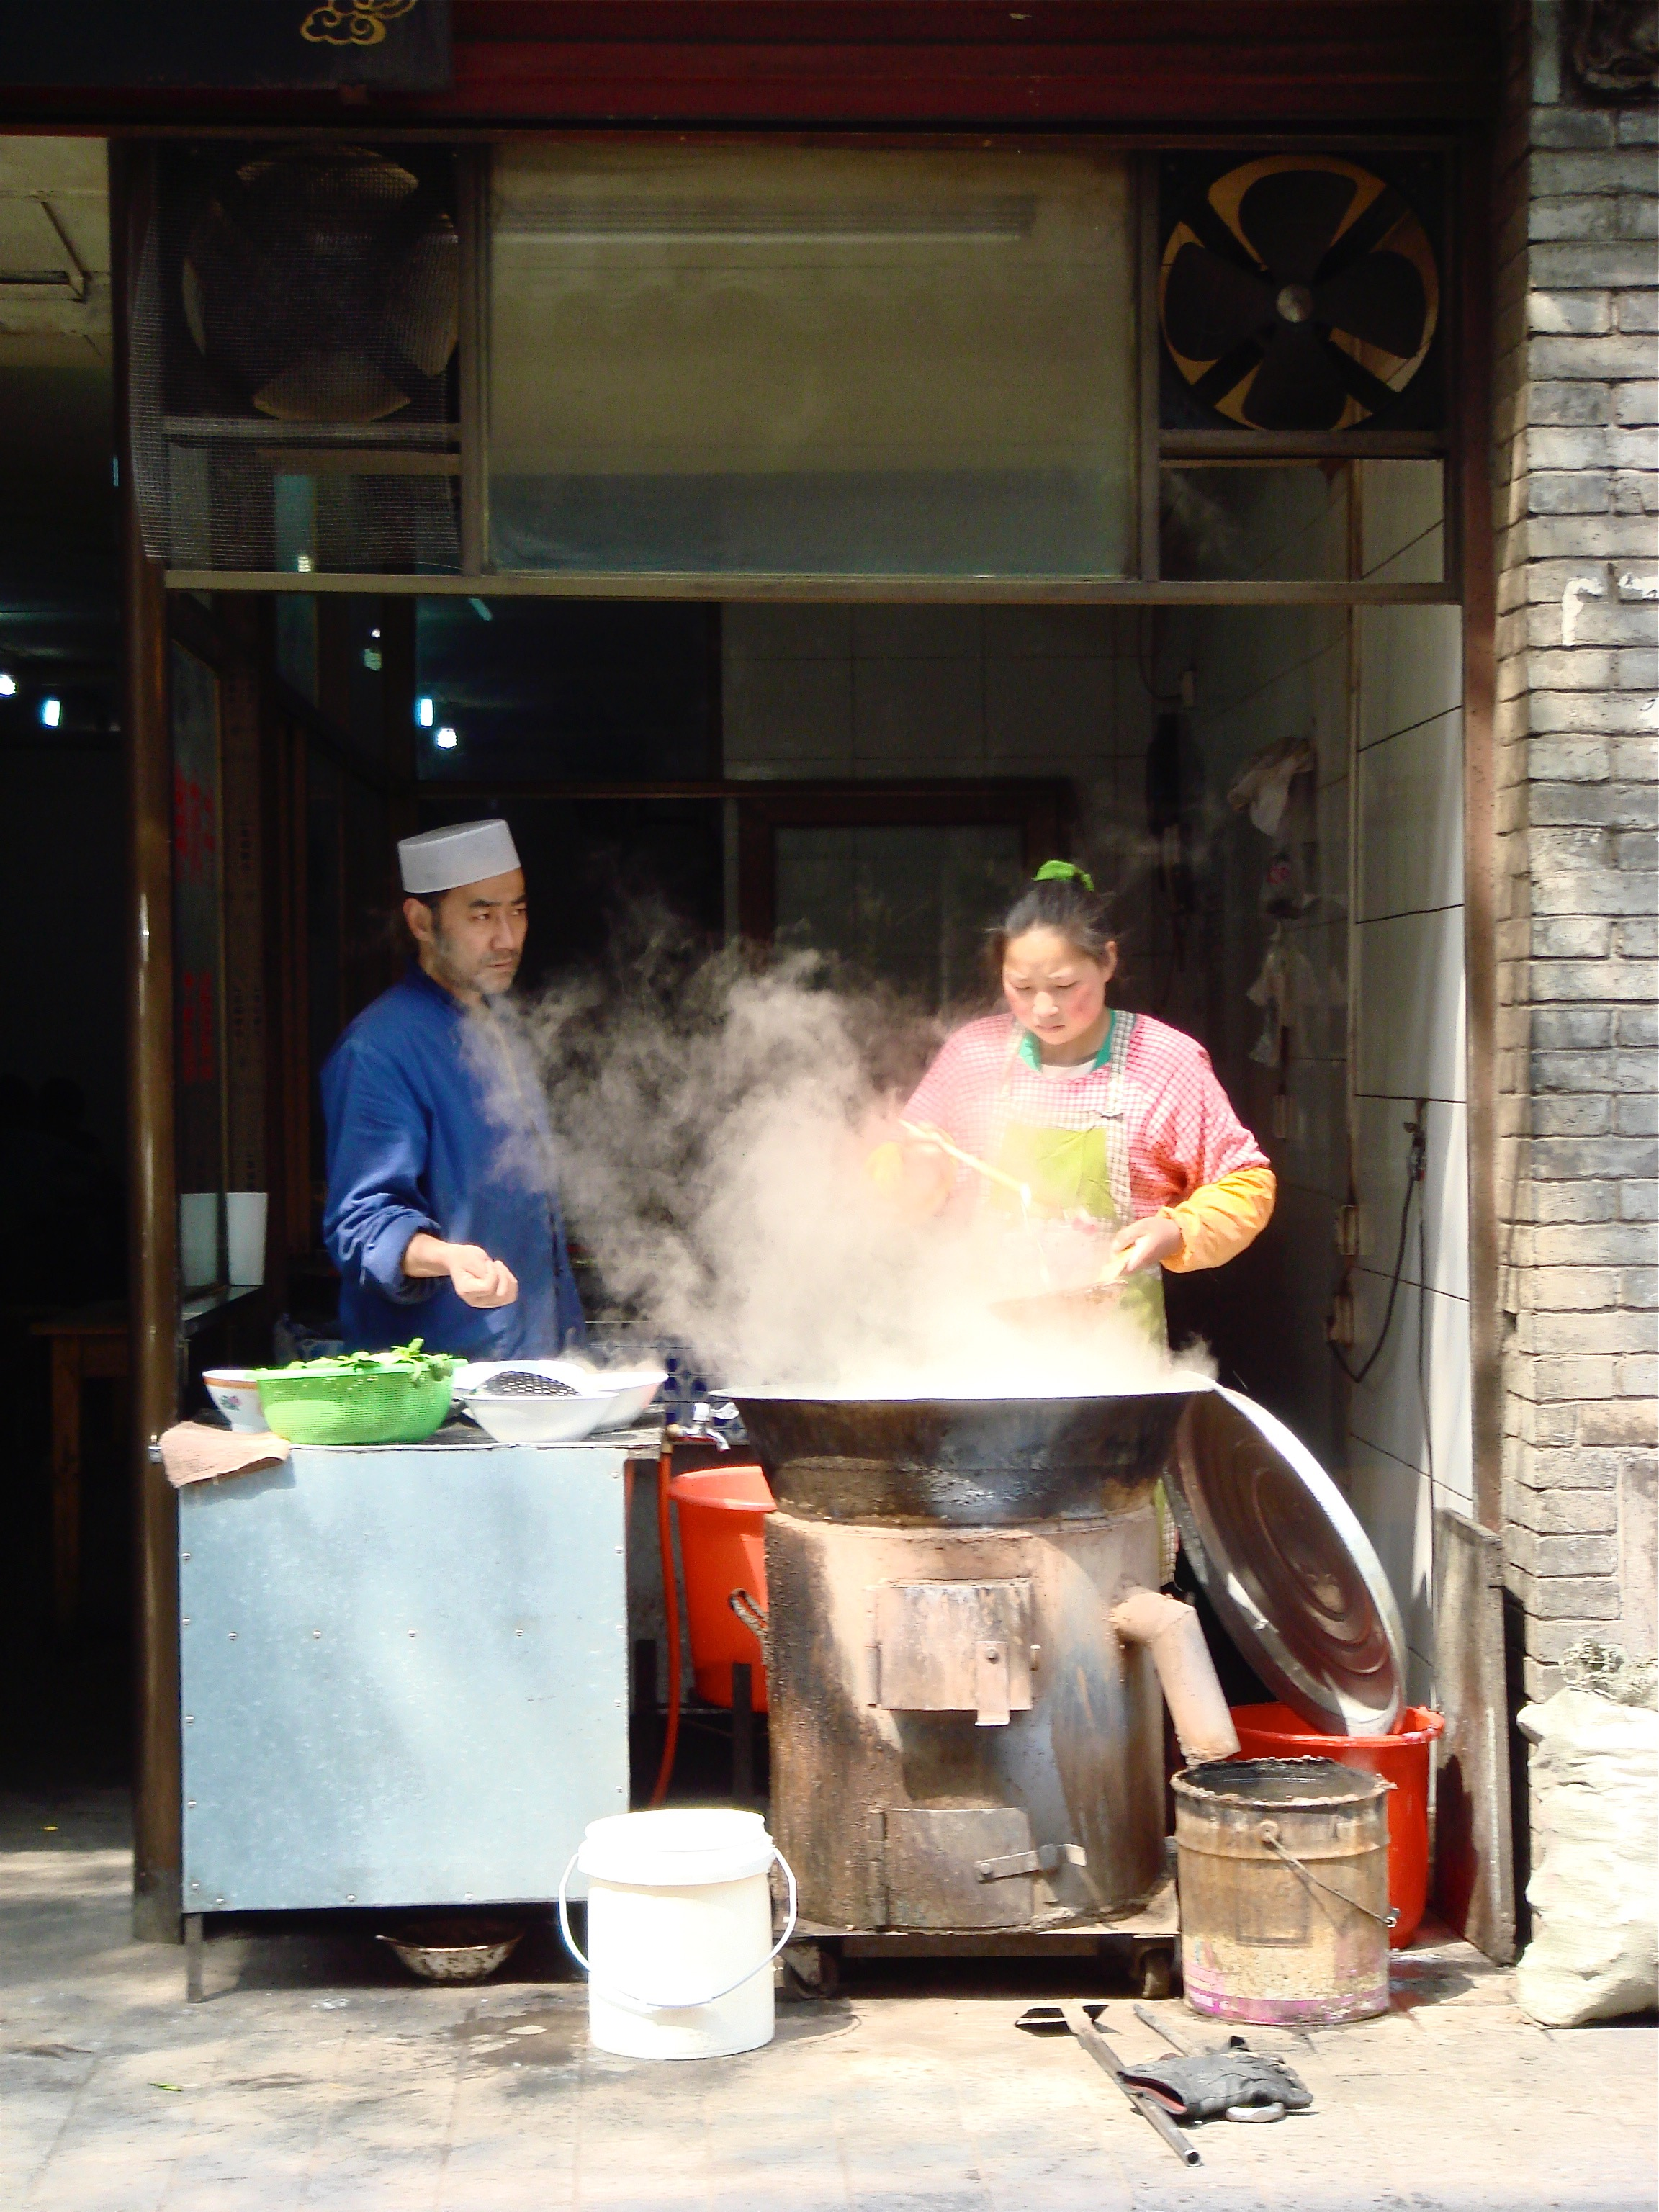 Food being prepared at a street stall in Hong Kong